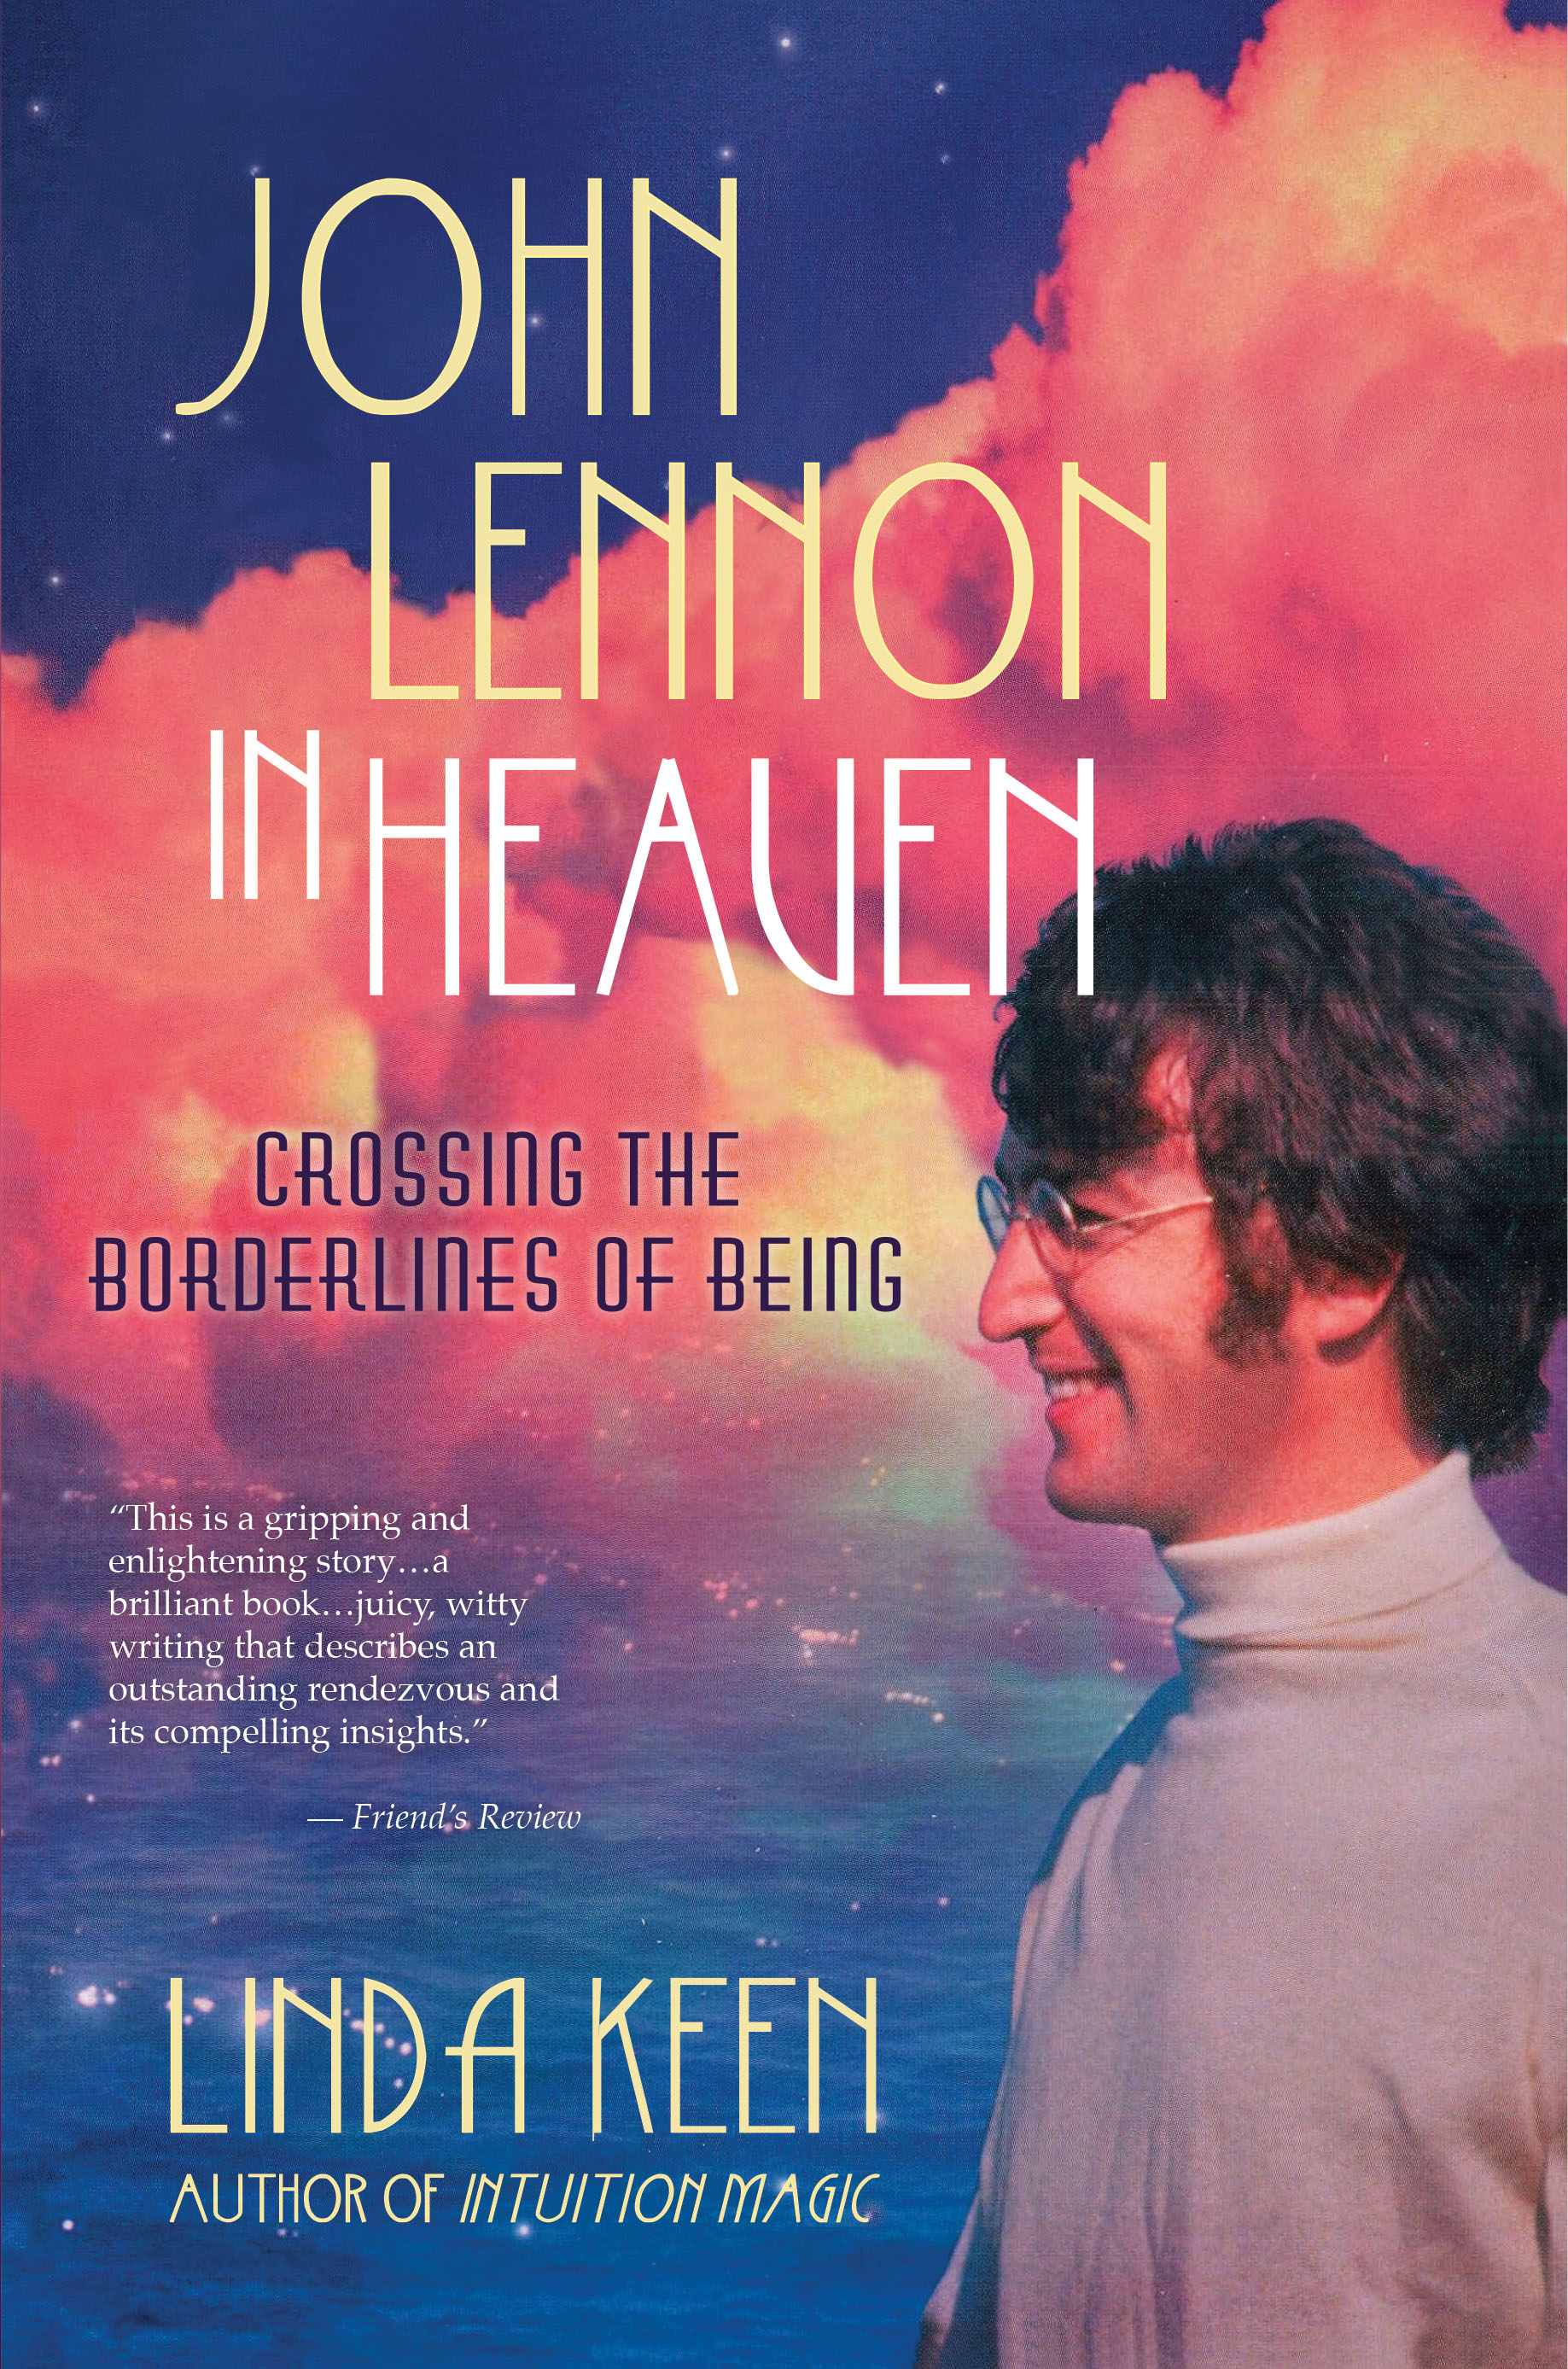 Journeys Across Seas of the Collective Consciousness   Each page celebrates Lennon's profound messages of peace, his belief in humanity's divine nature, and his own reverence for the magic of the creative spirit.